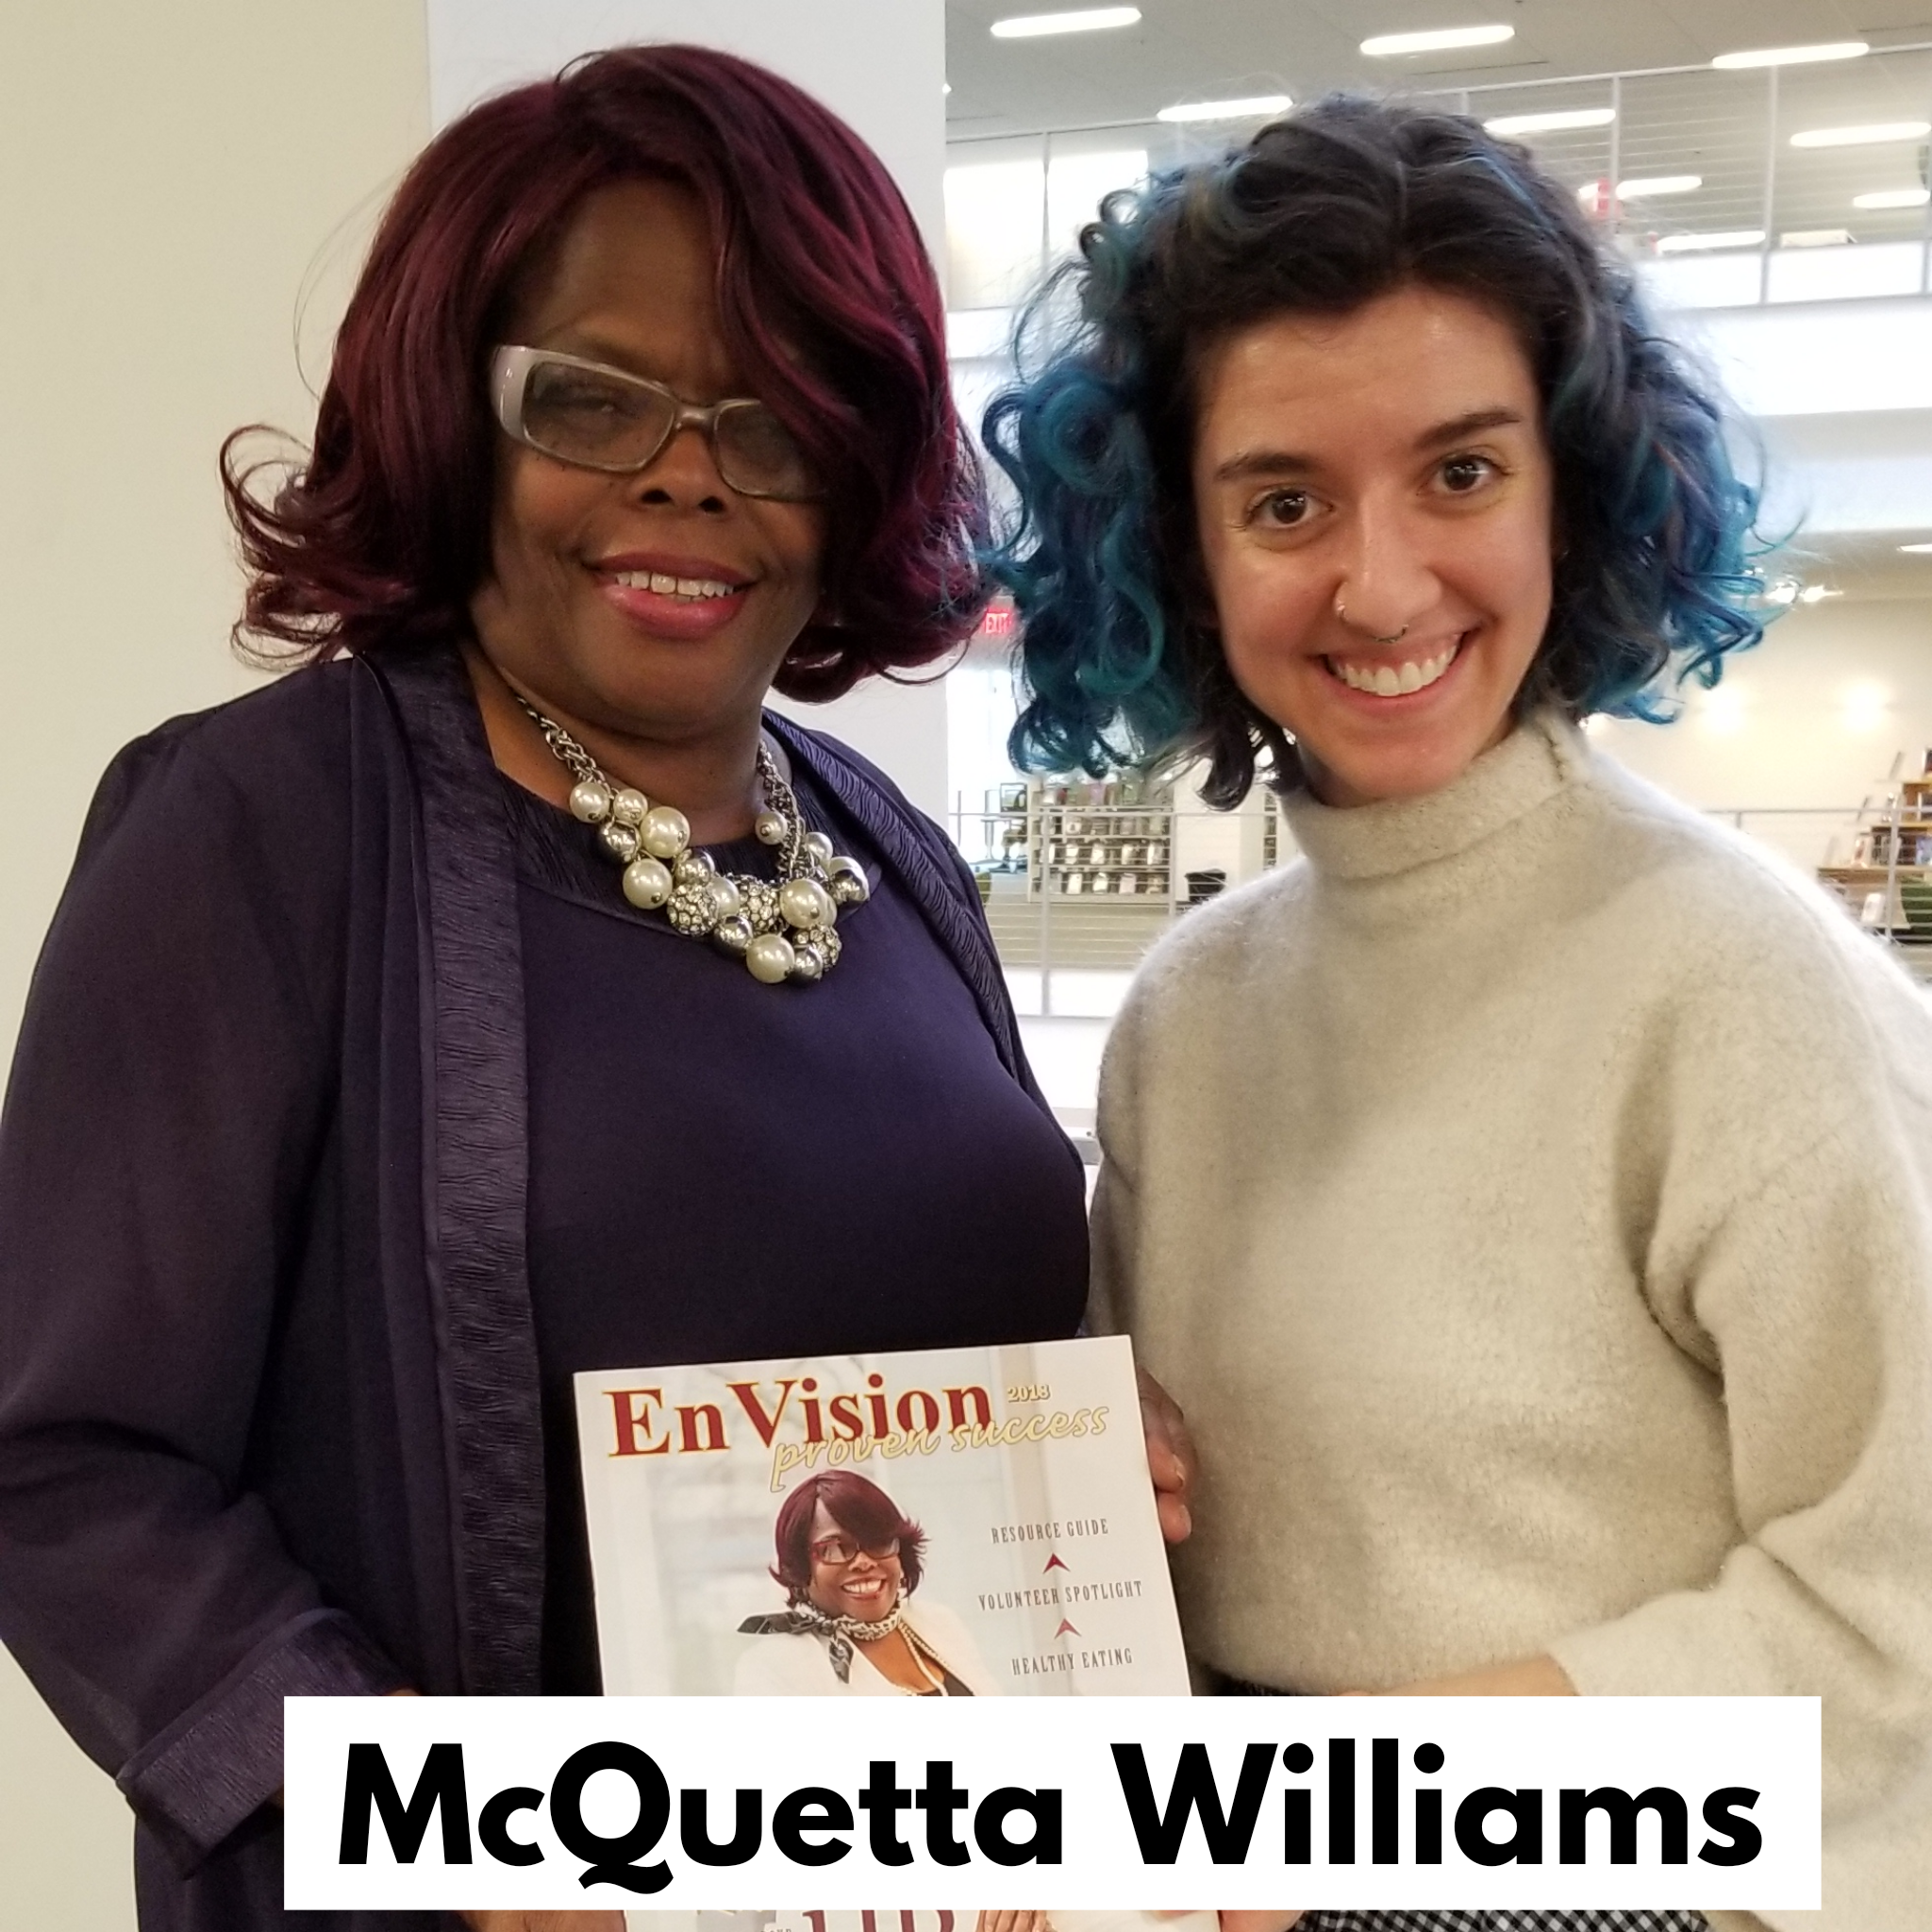 Lorrin with McQuetta Williams, Founder and CEO of EnVision Proven Success.